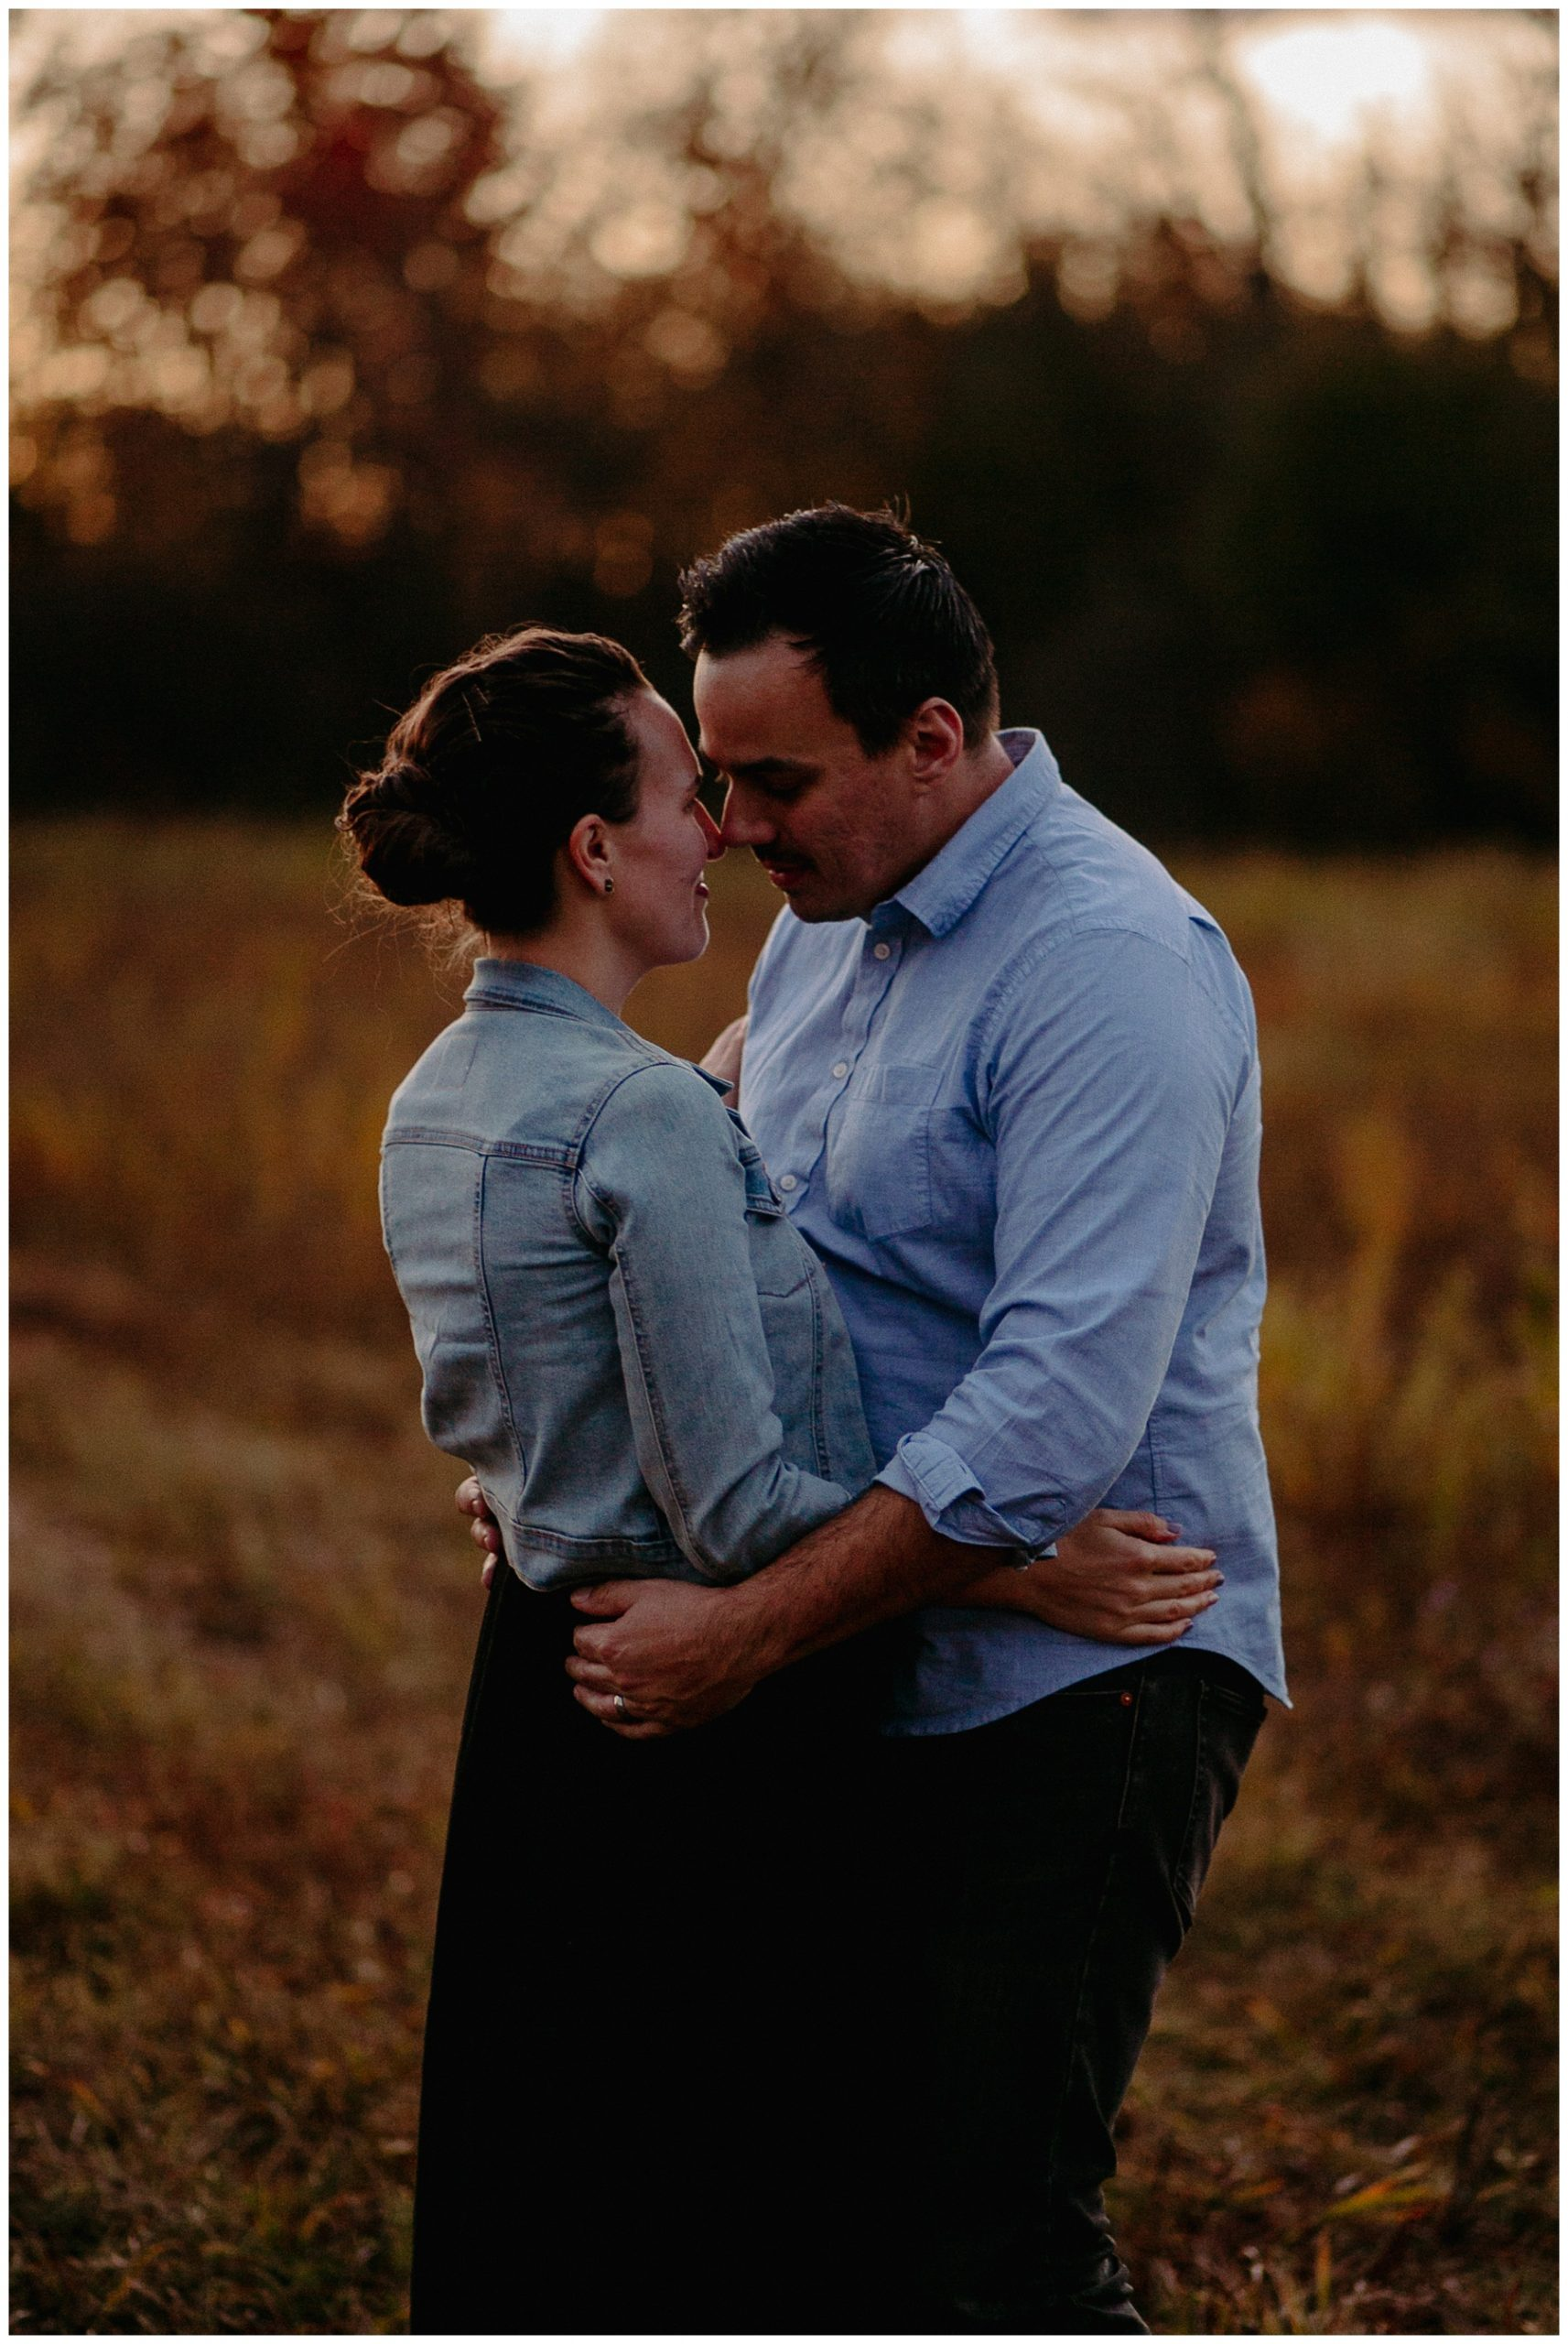 kerry ford photography - fall autumn family session perth037.jpg